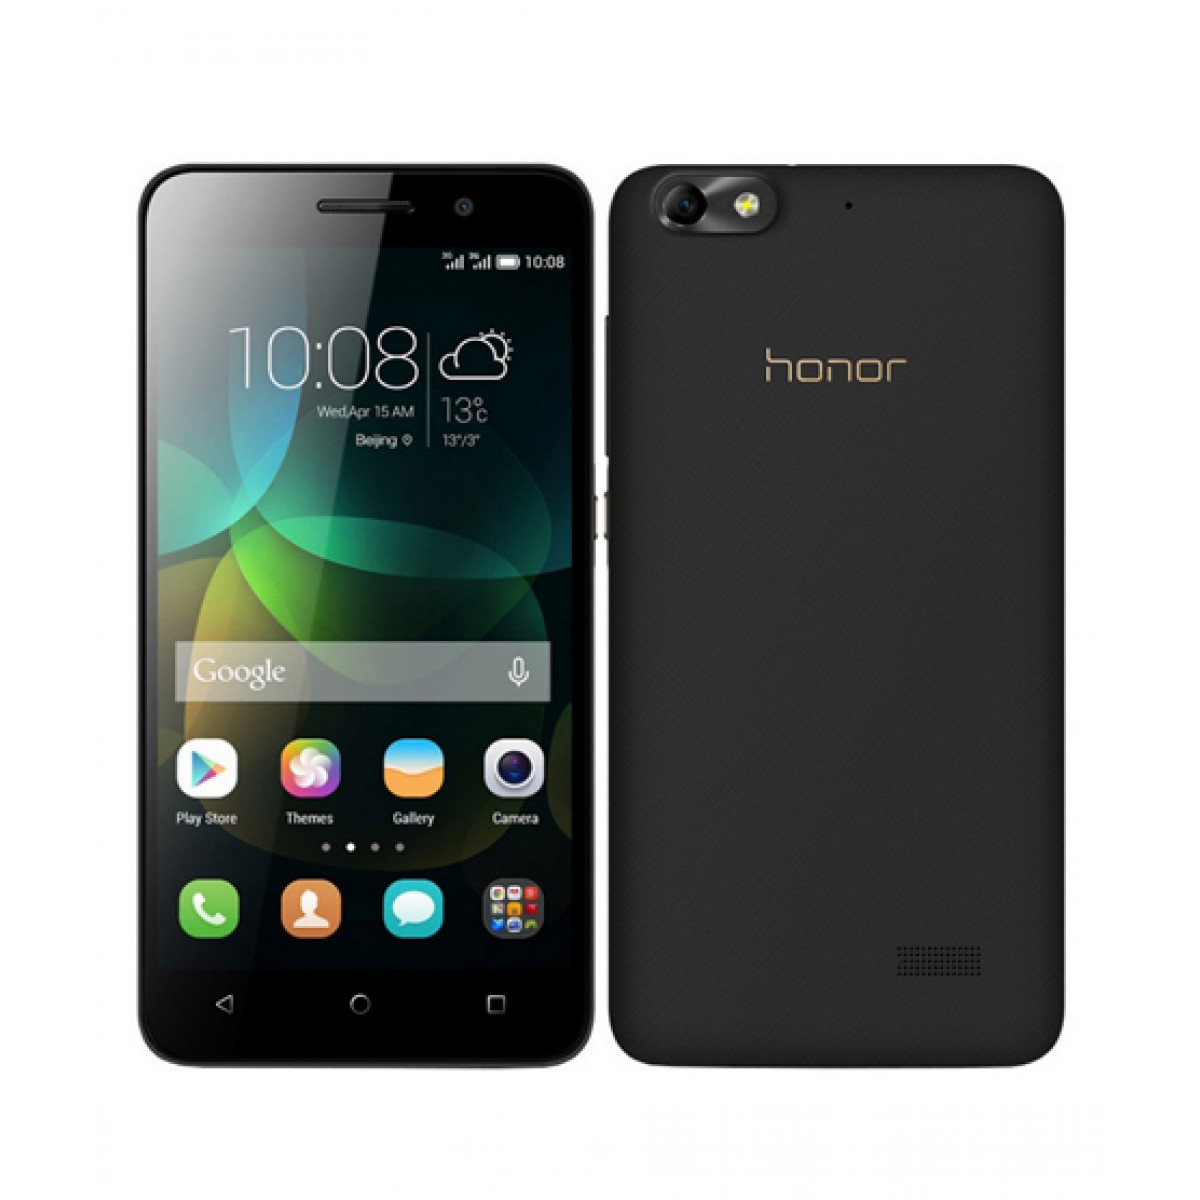 Honor 4C 3G Dual Sim Black